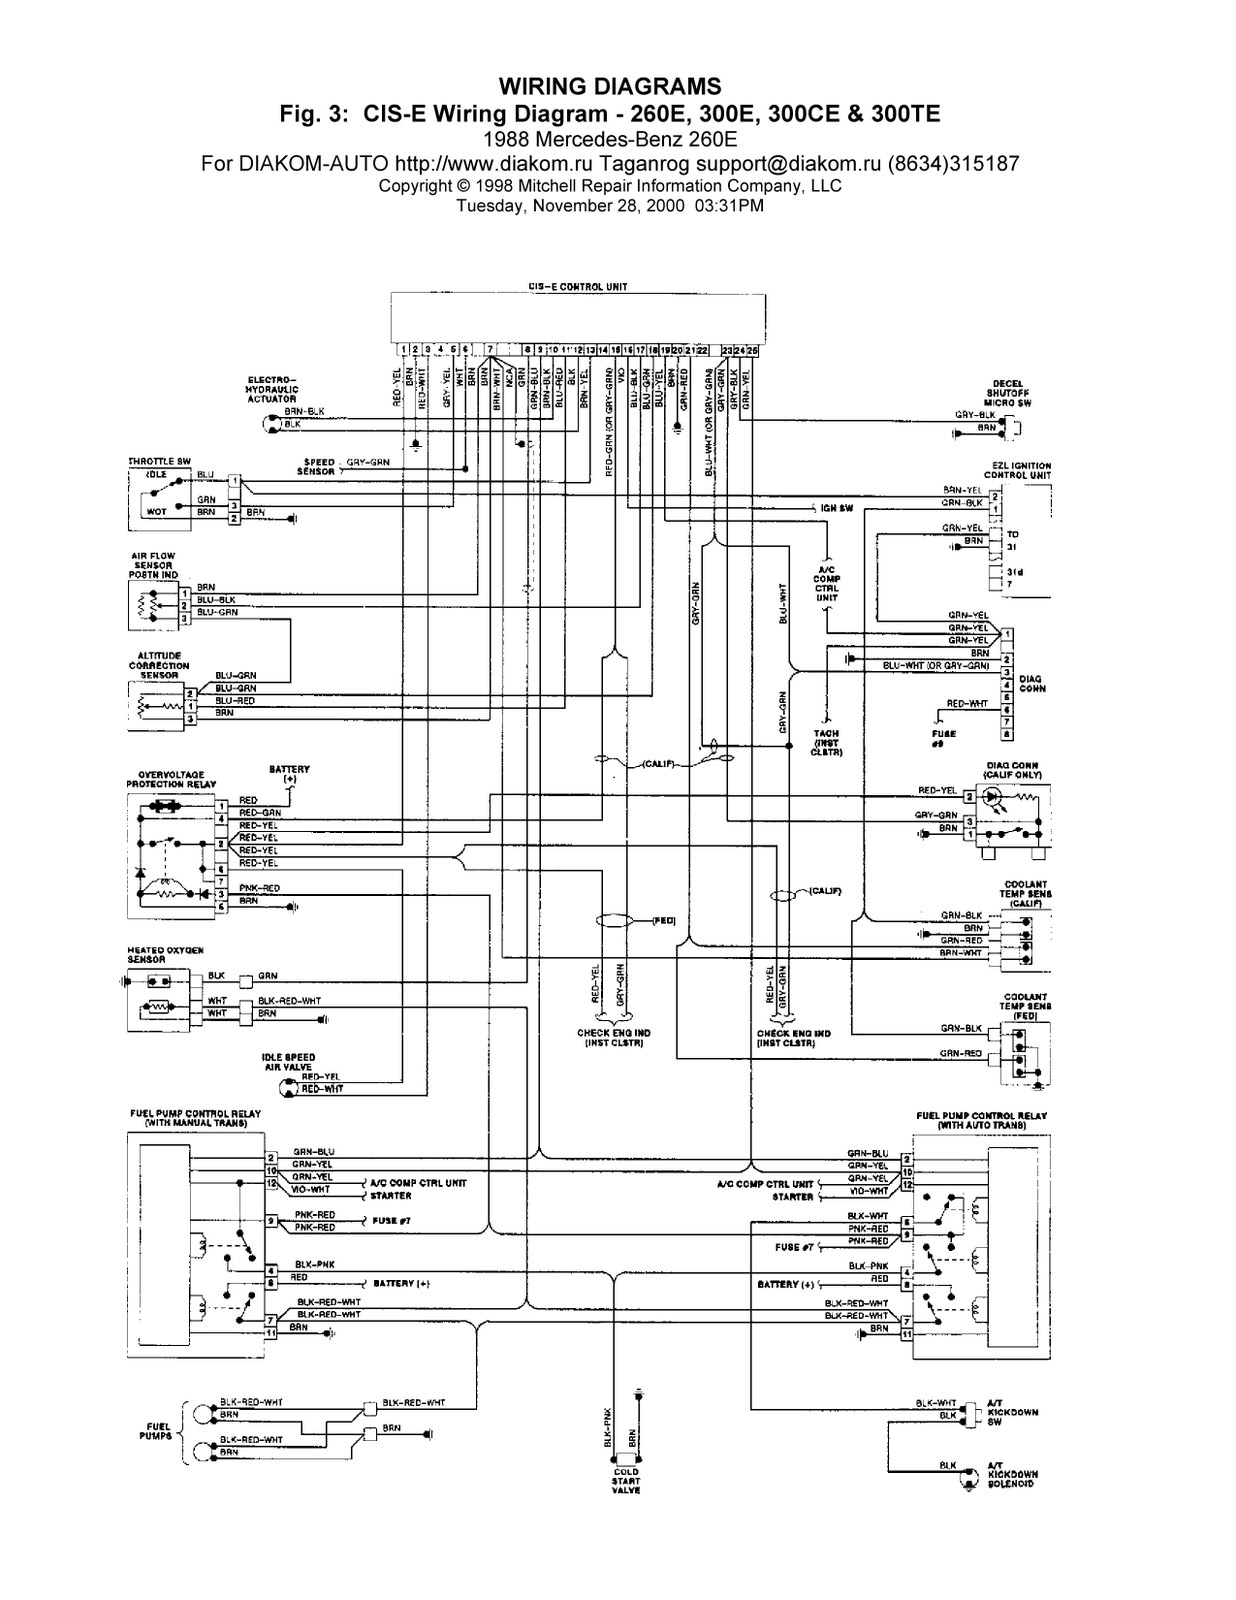 Phenomenal Mercedes Benz Wiring Diagrams Basic Electronics Wiring Diagram Wiring Digital Resources Funapmognl